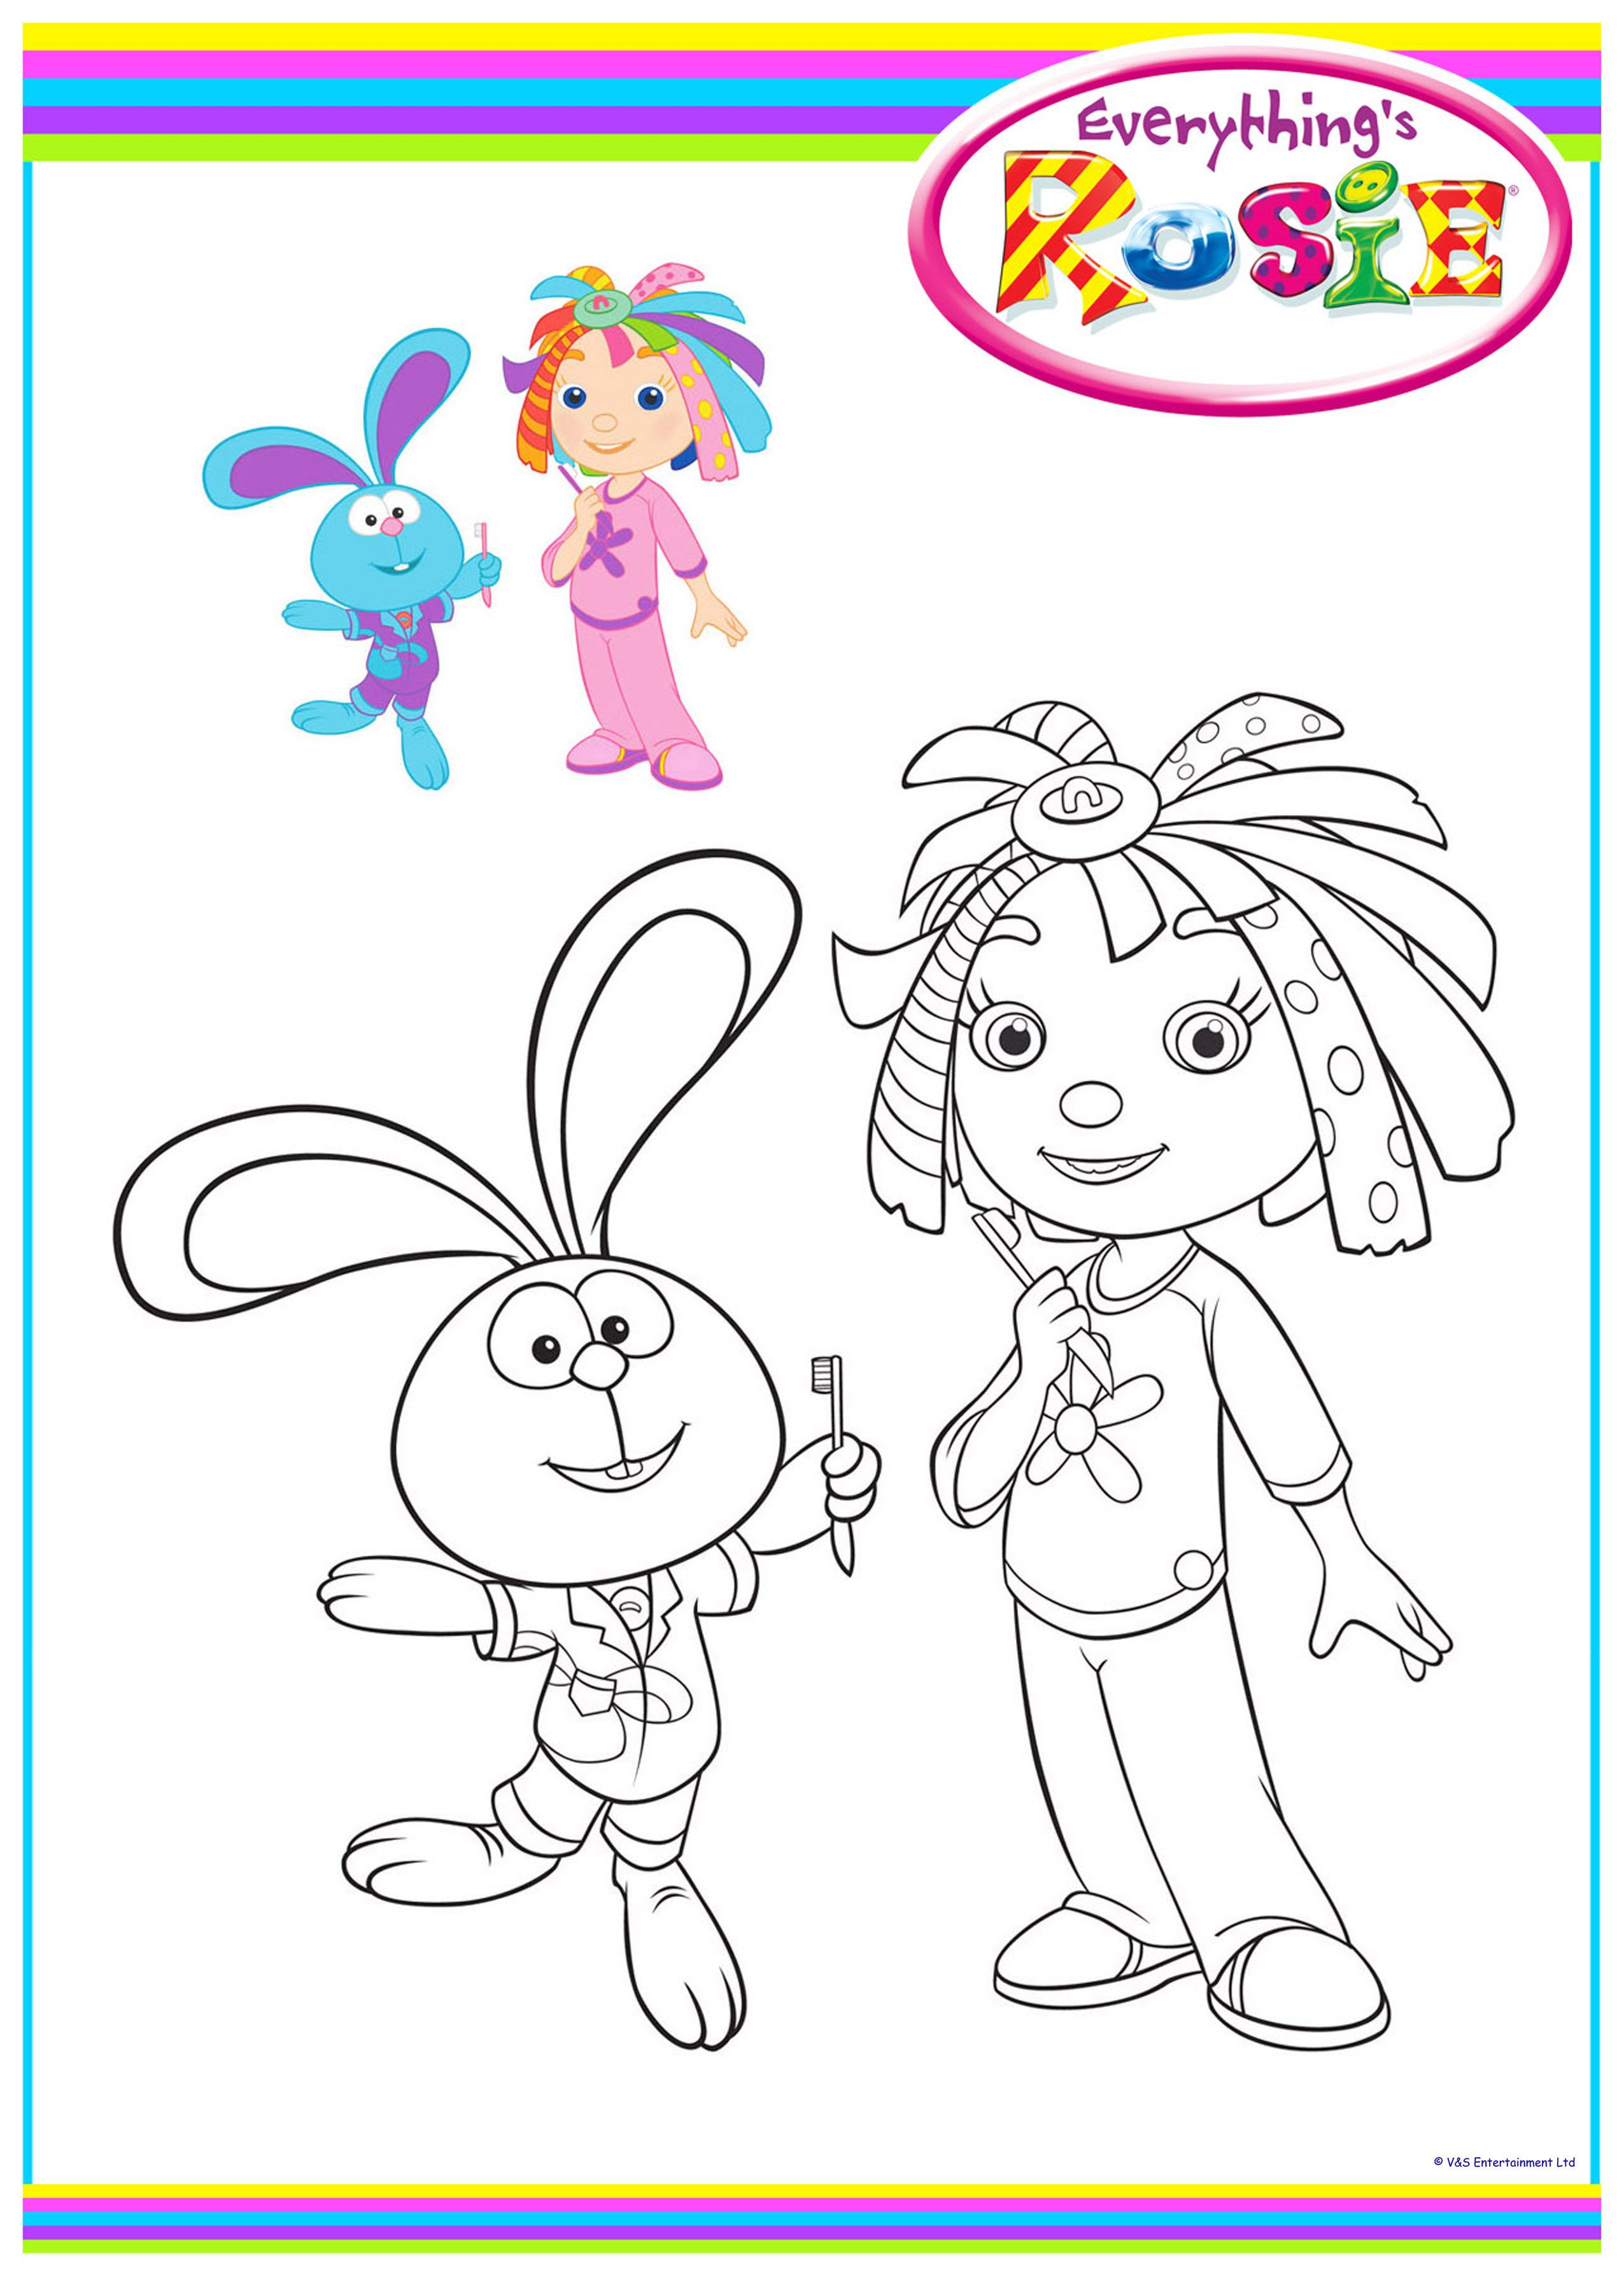 Everything S Rosie Colouring Sheets